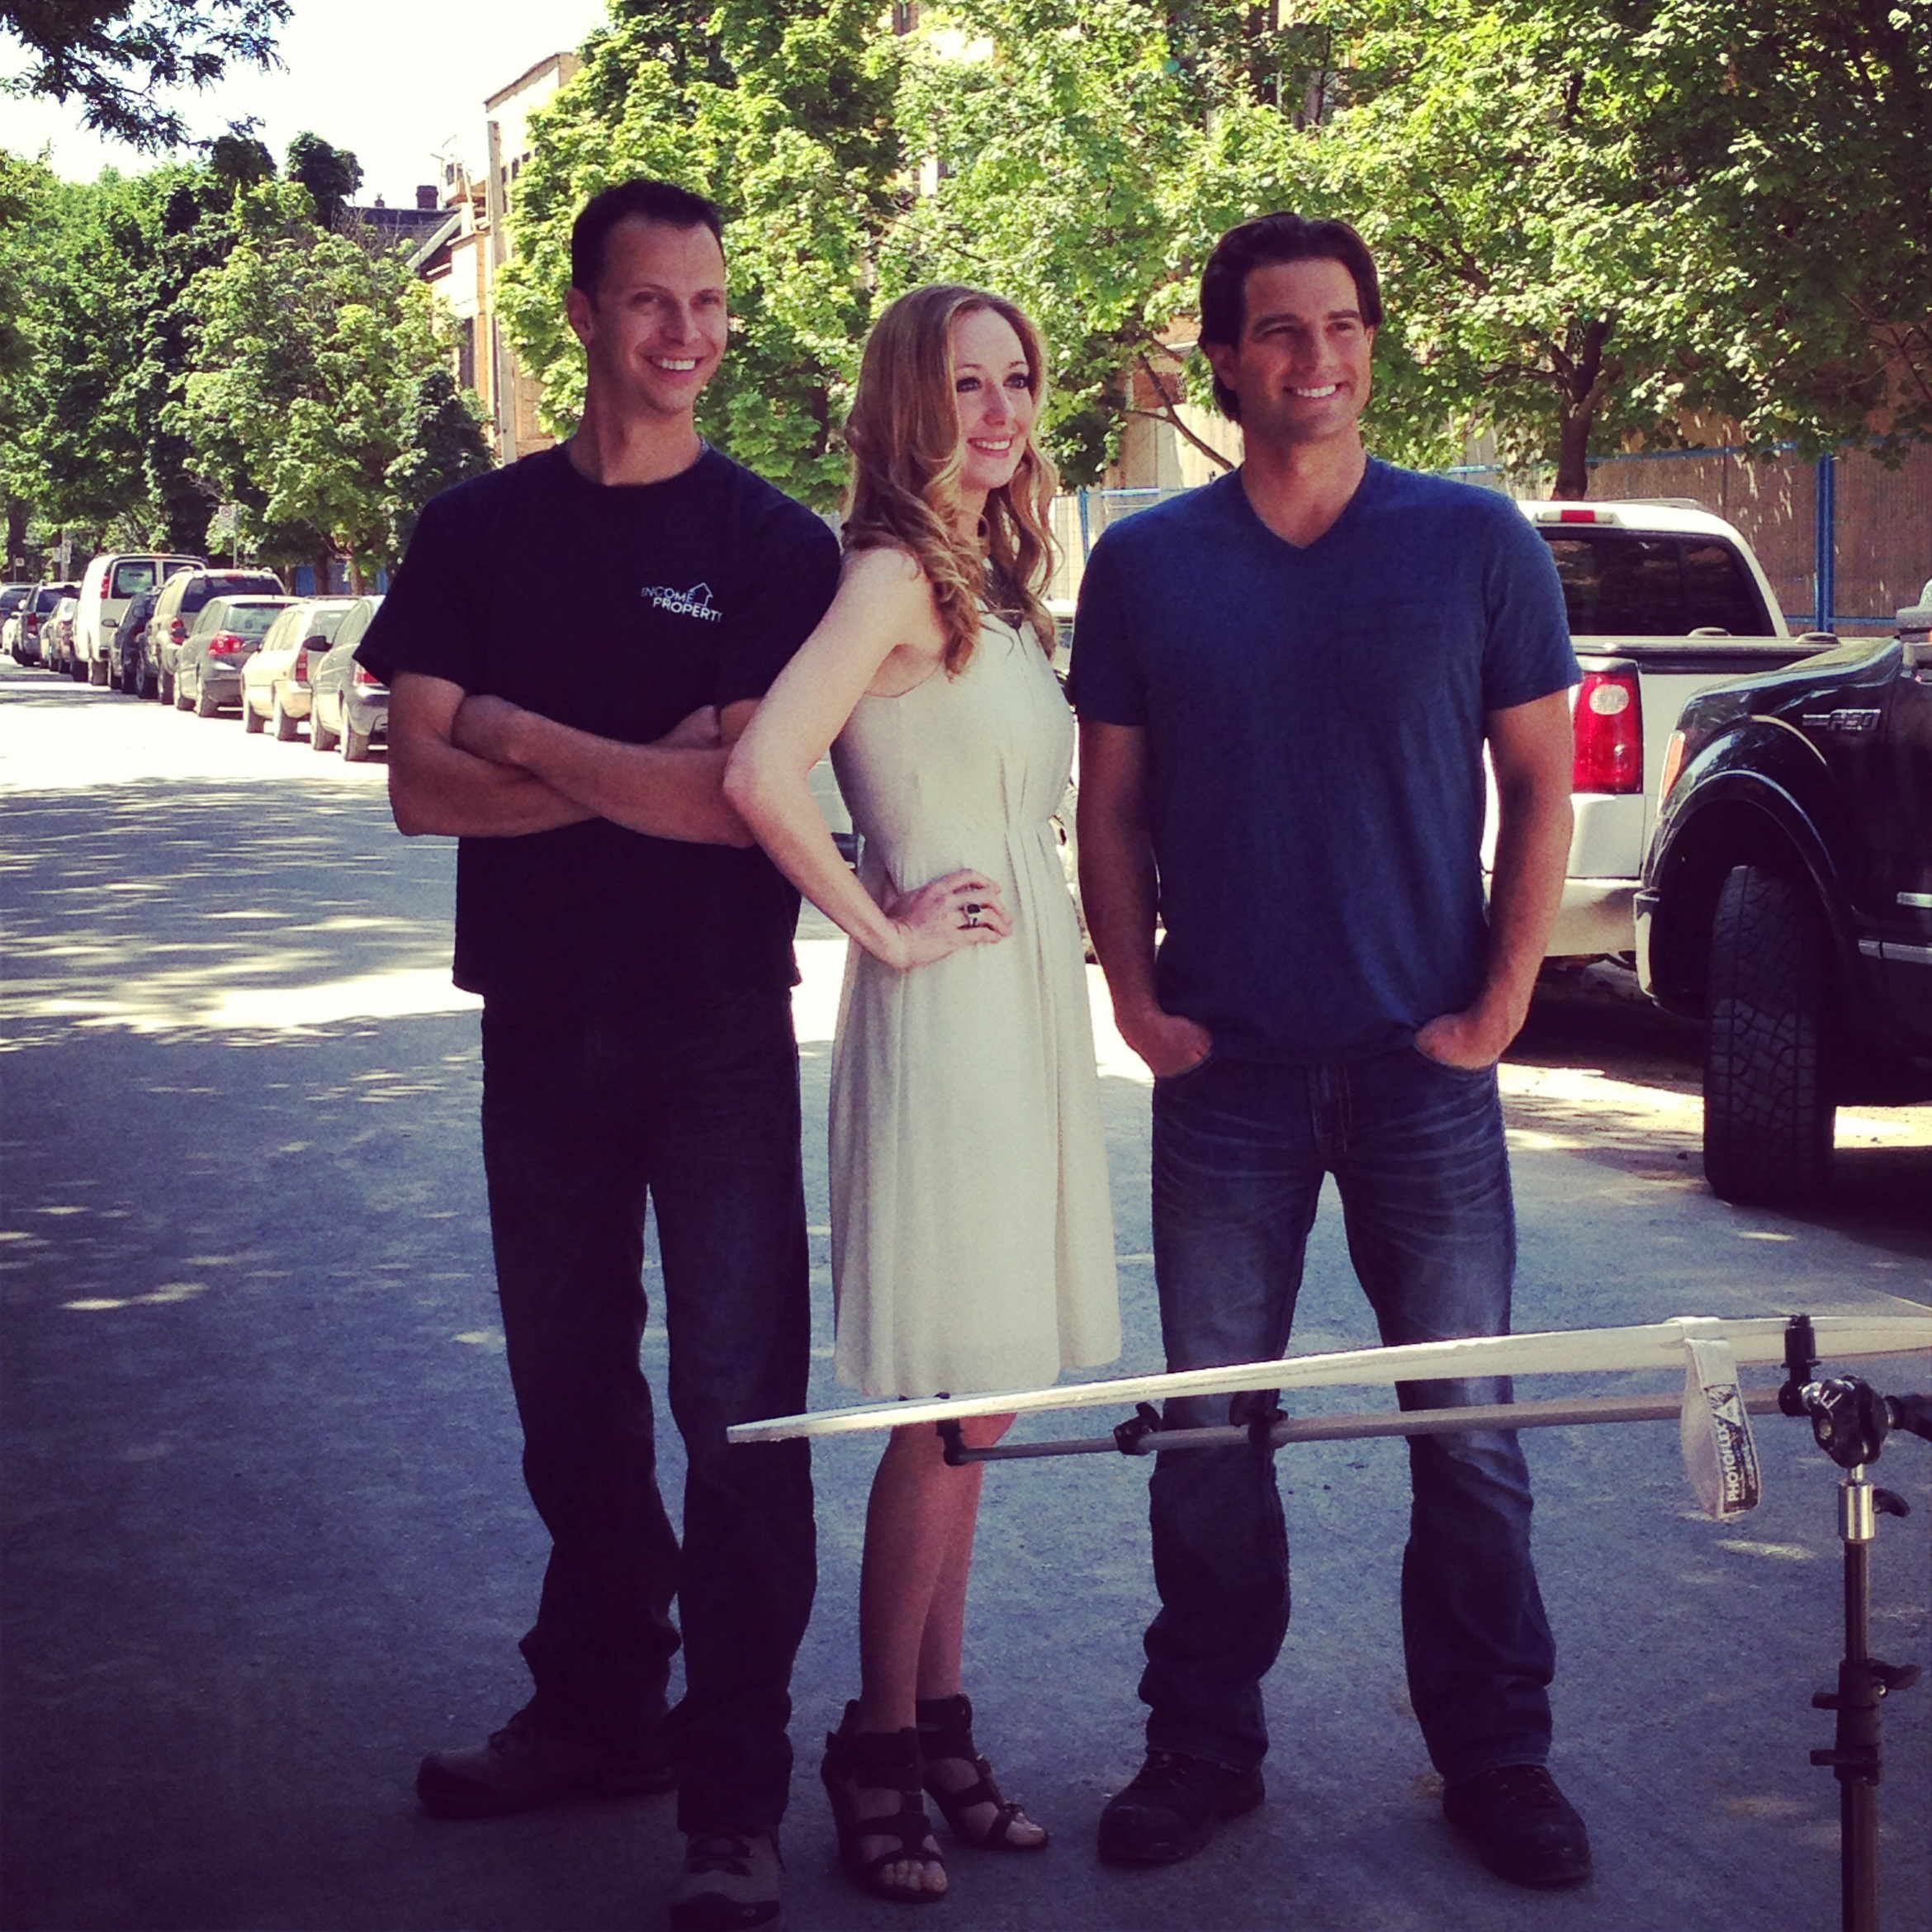 The Income Property Team: Project Manager Tim Sellars, Designer Melissa Davis, and Host Scott McGillivray.